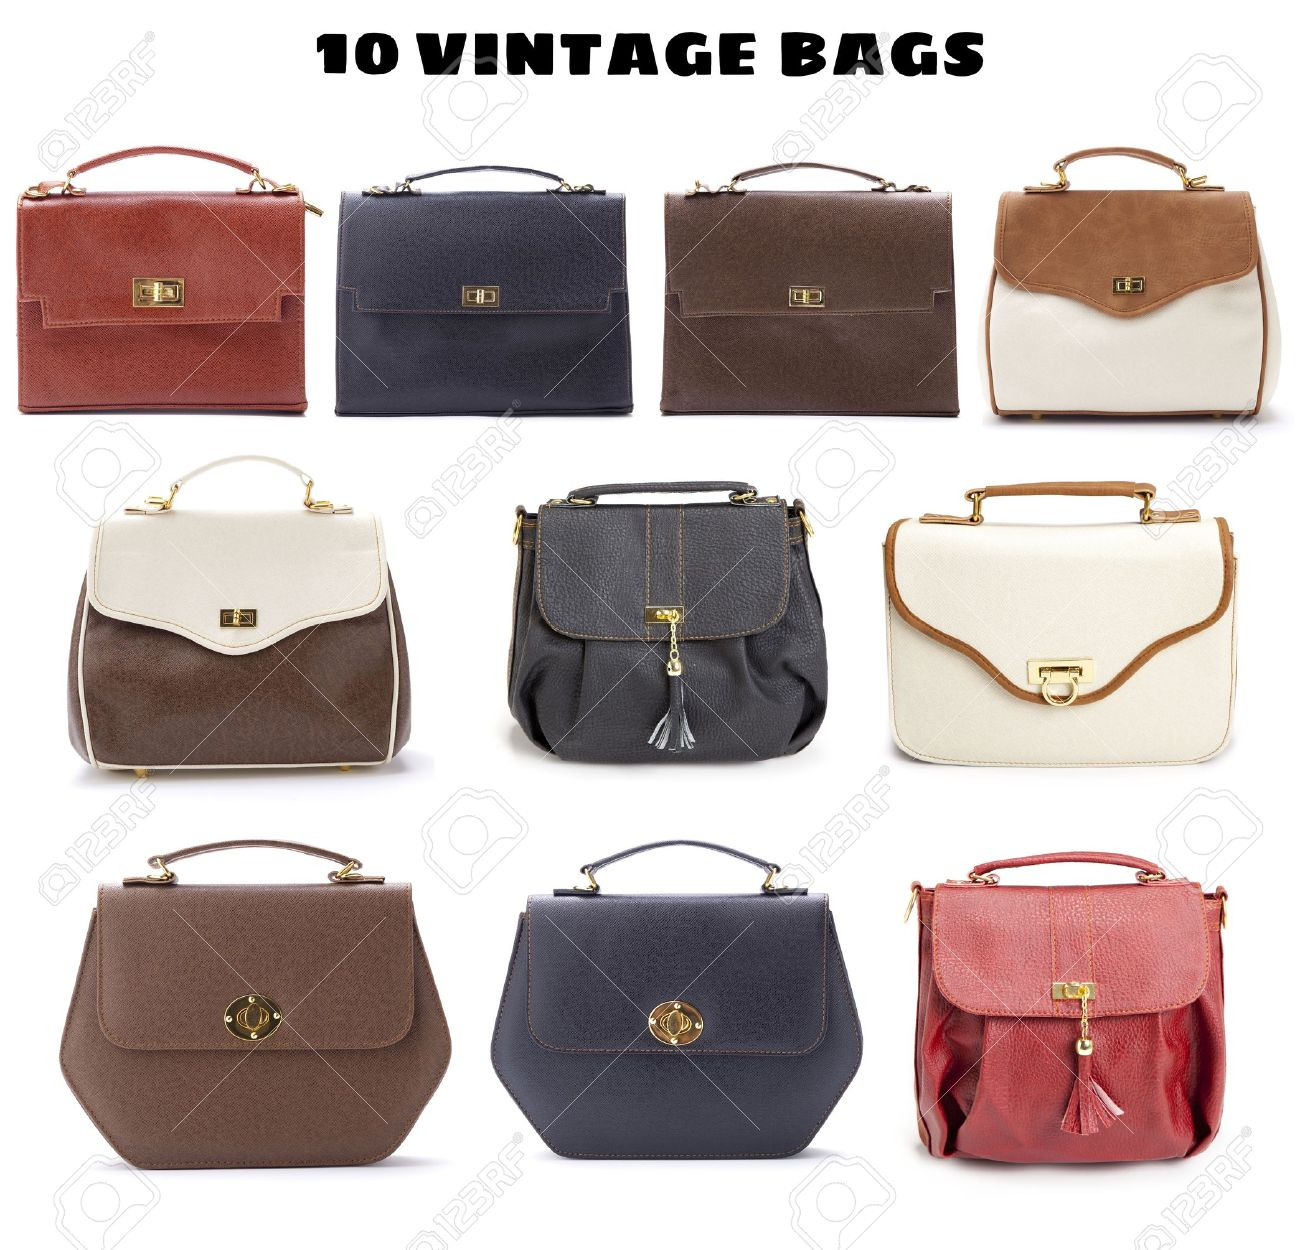 10 Beautiful Vintage Bags Stock Photo, Picture And Royalty Free ...